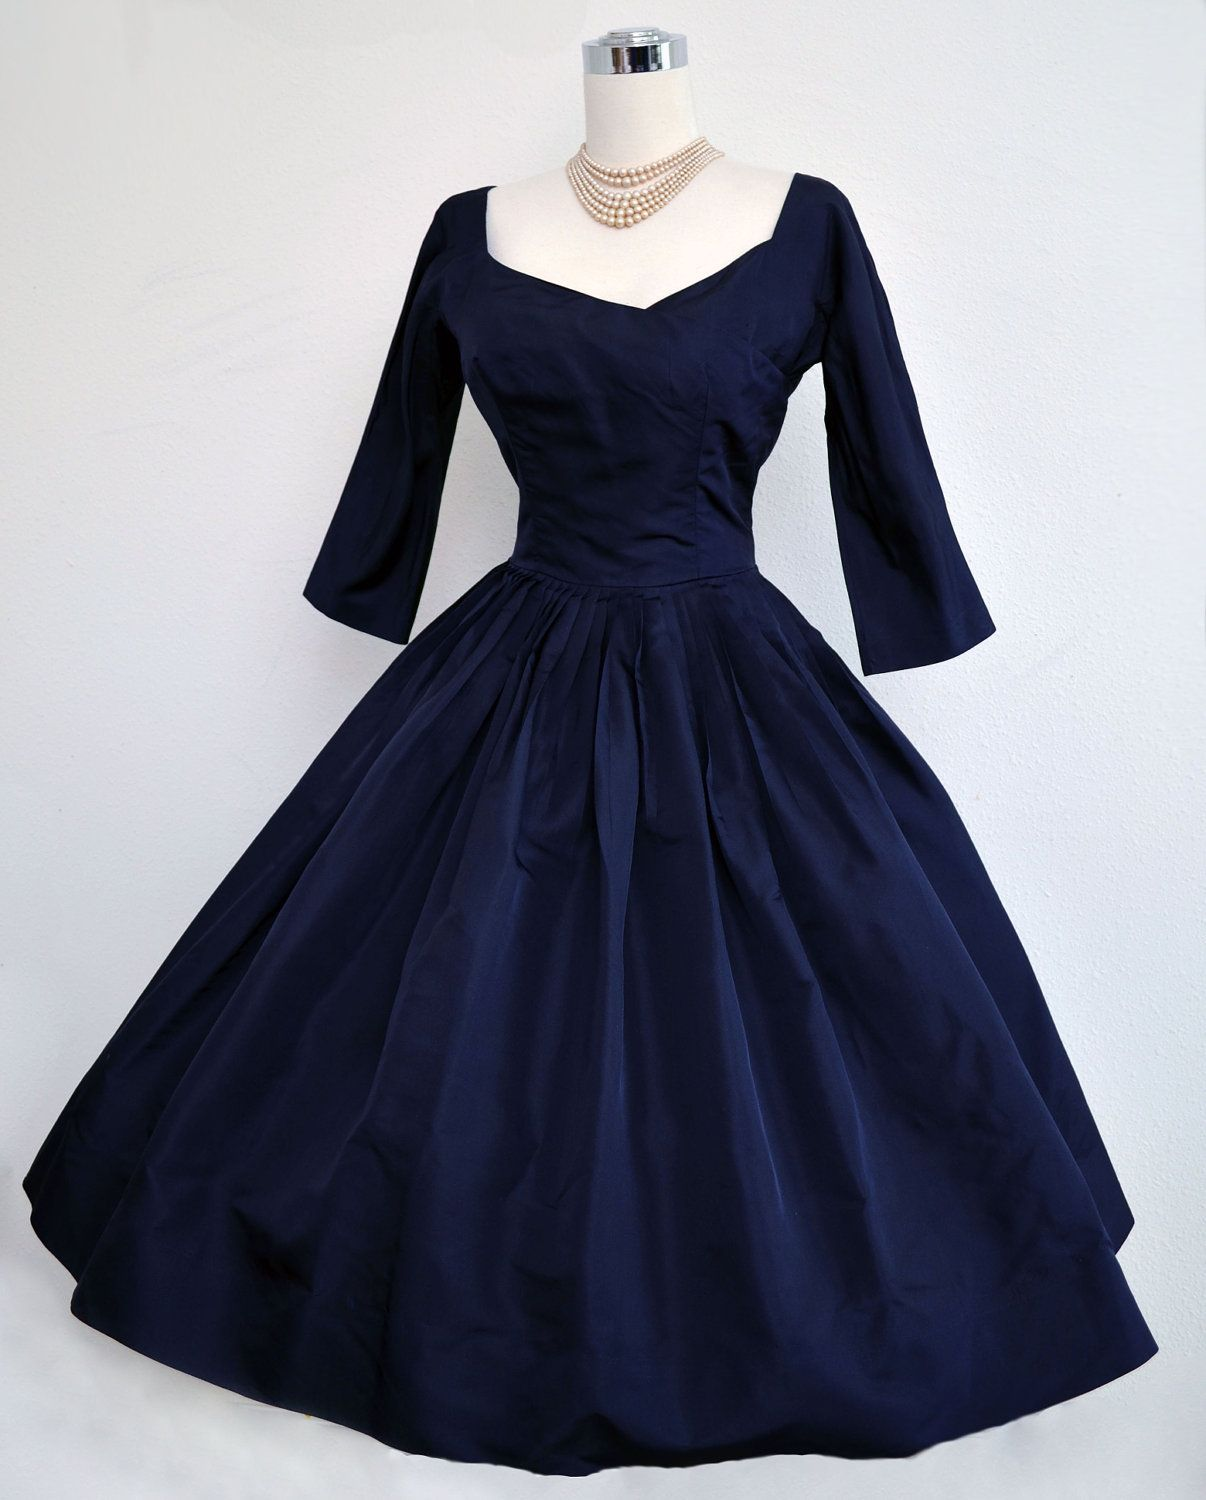 1950's Dress Navy Blue Silk Cocktail Dress this looks